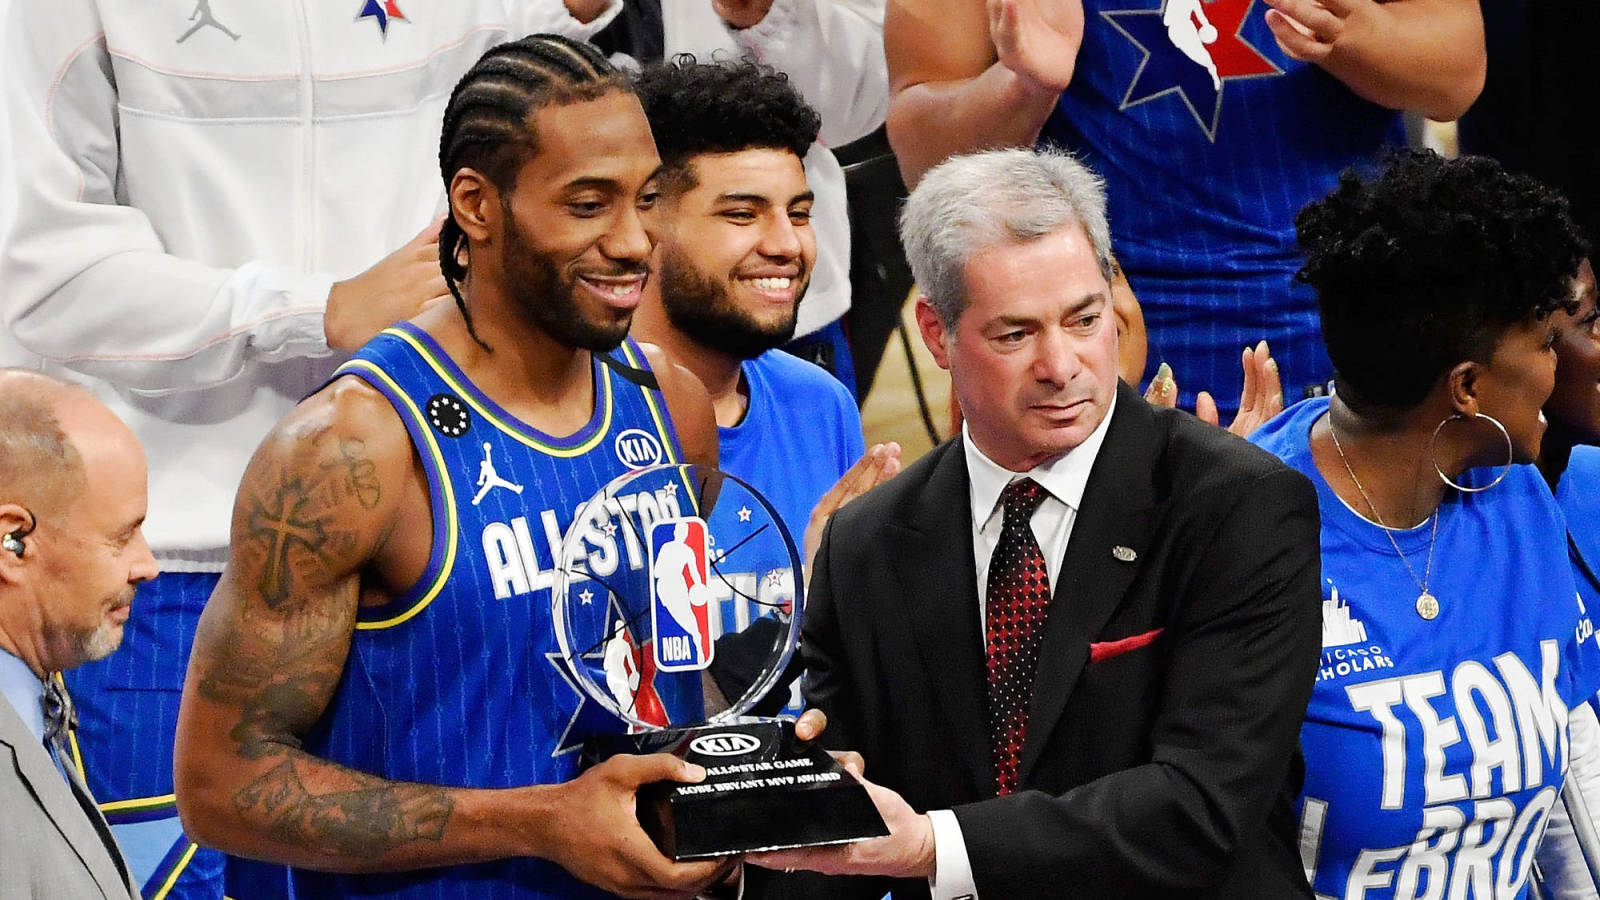 Winners and losers from 2020 NBA All-Star Game